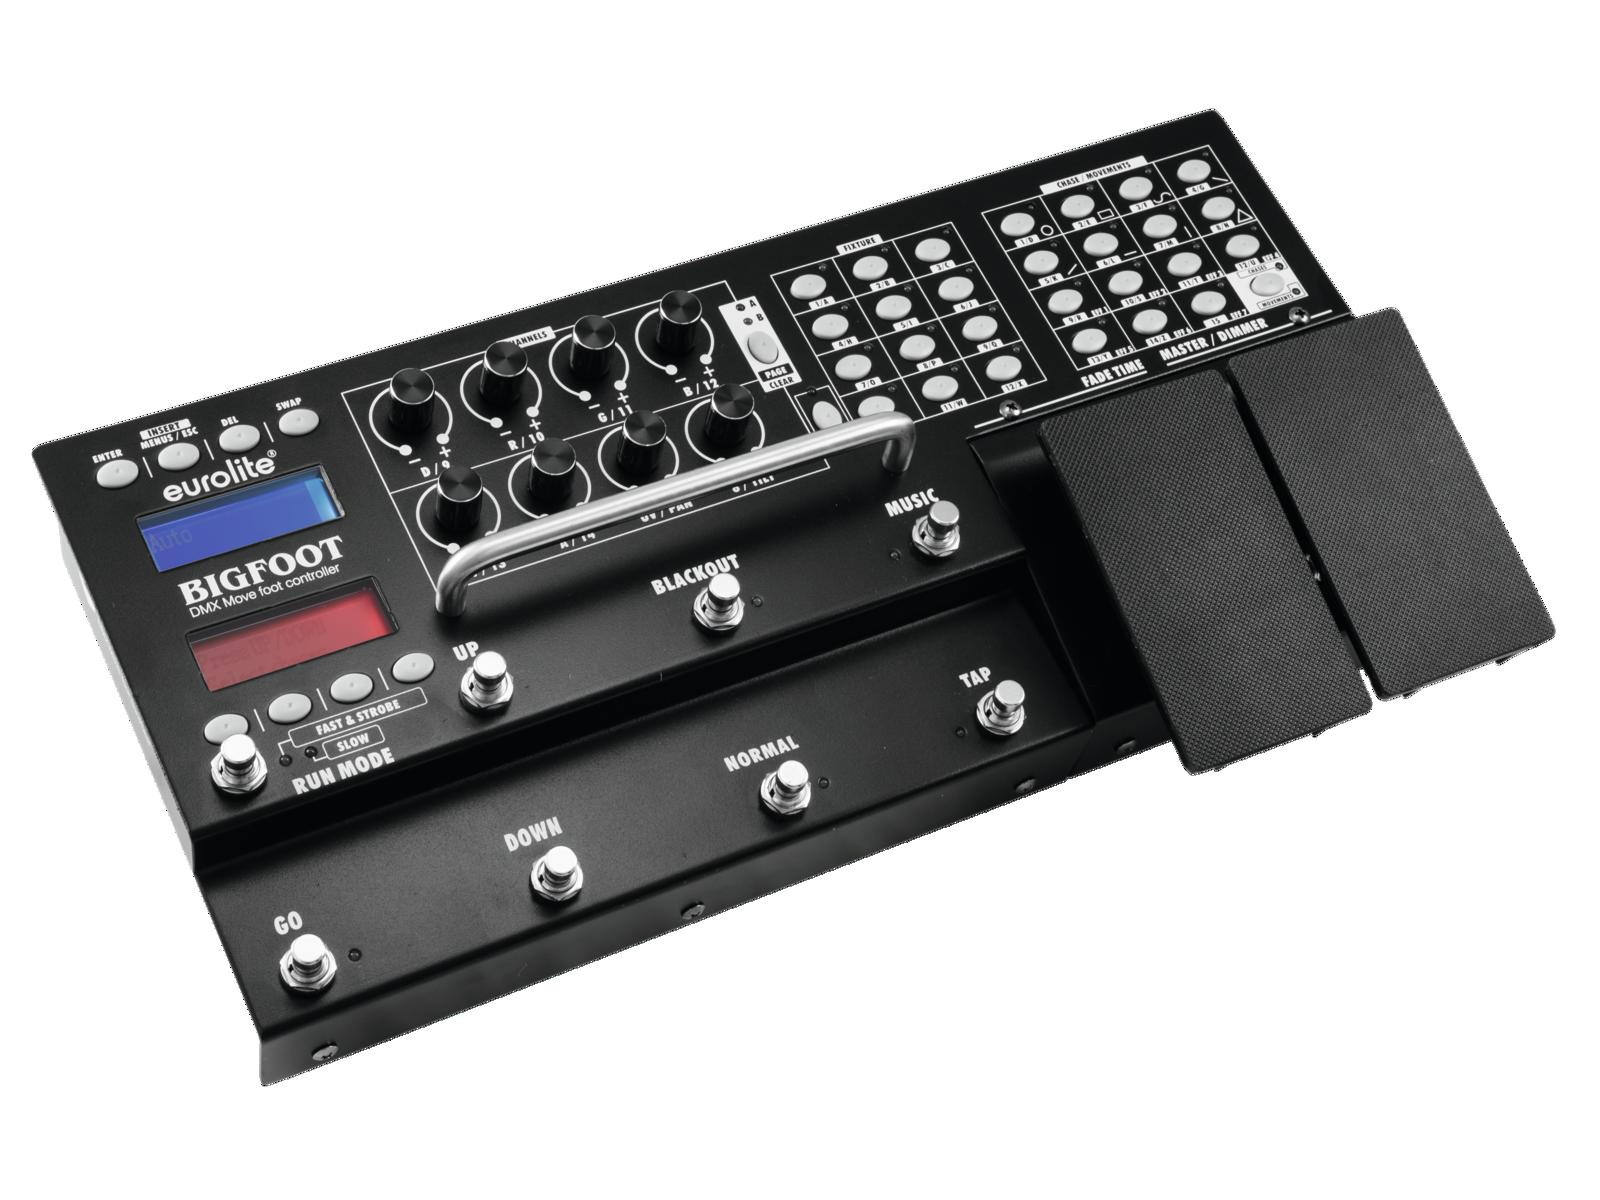 EUROLITE DMX Spostare Bigfoot foot controller 192